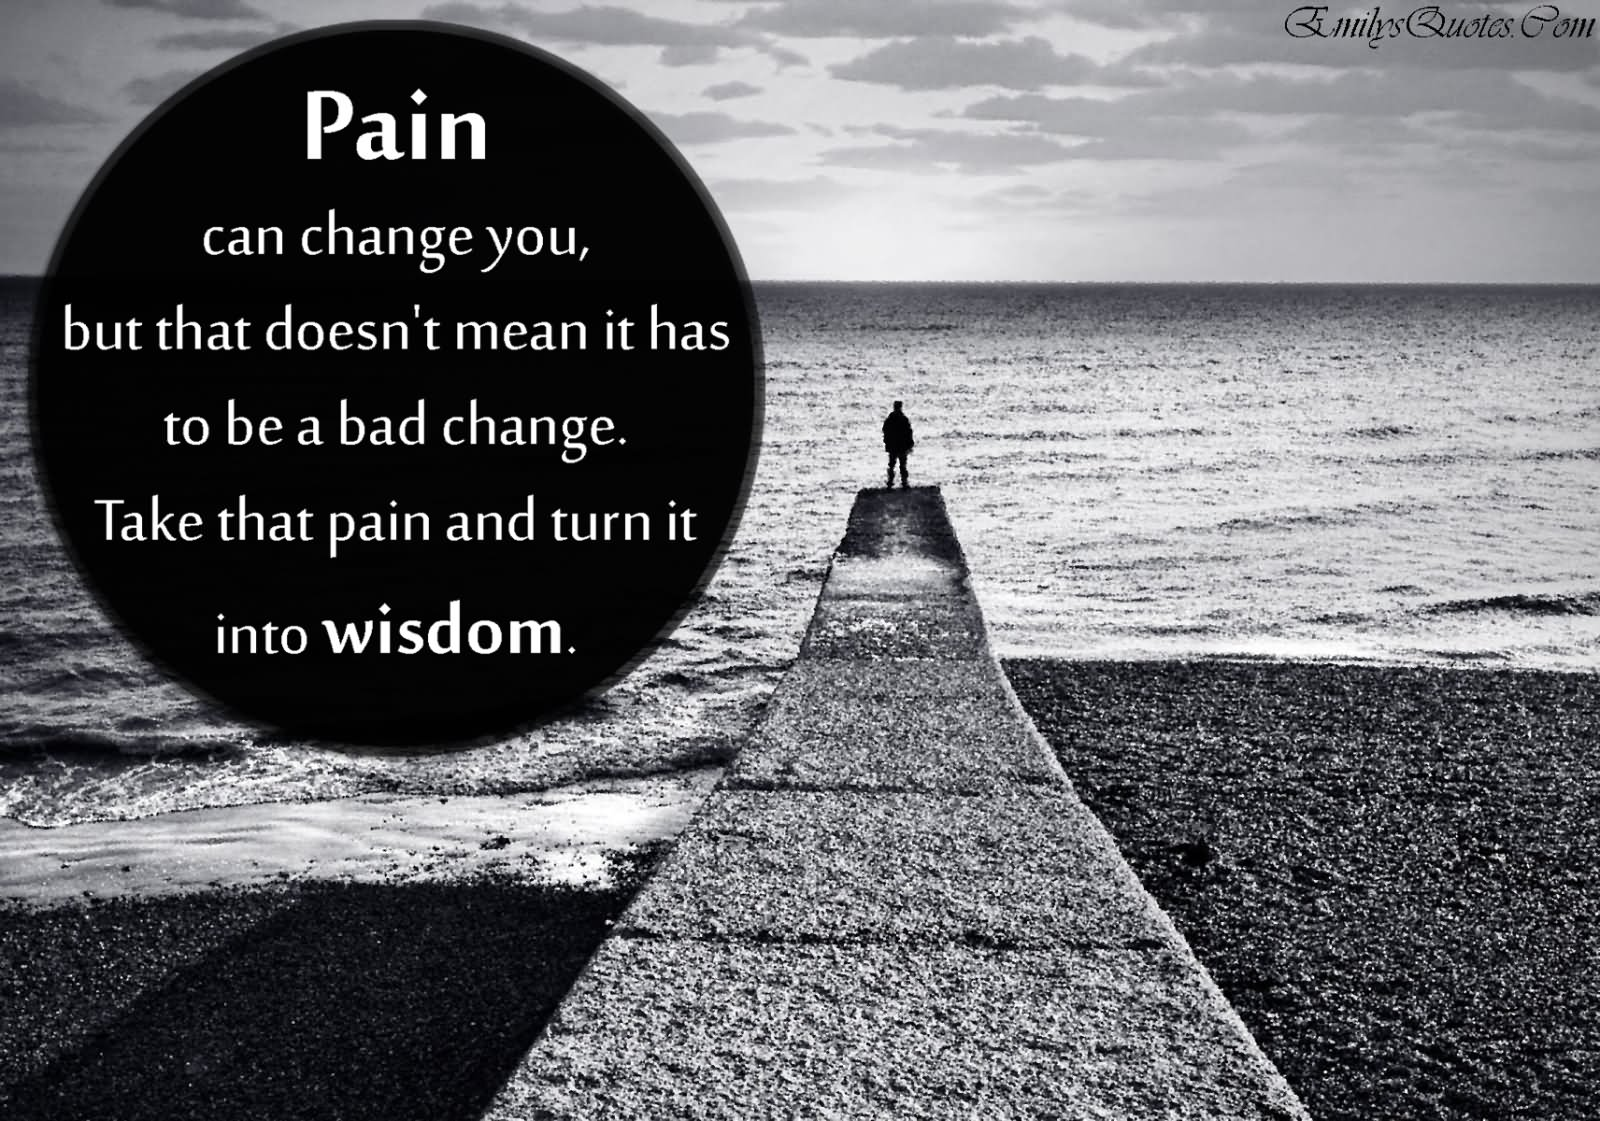 Turning A Bad Situation Into A Good One Quotes: We Change Our Behavior When The Pain Of Staying The Same